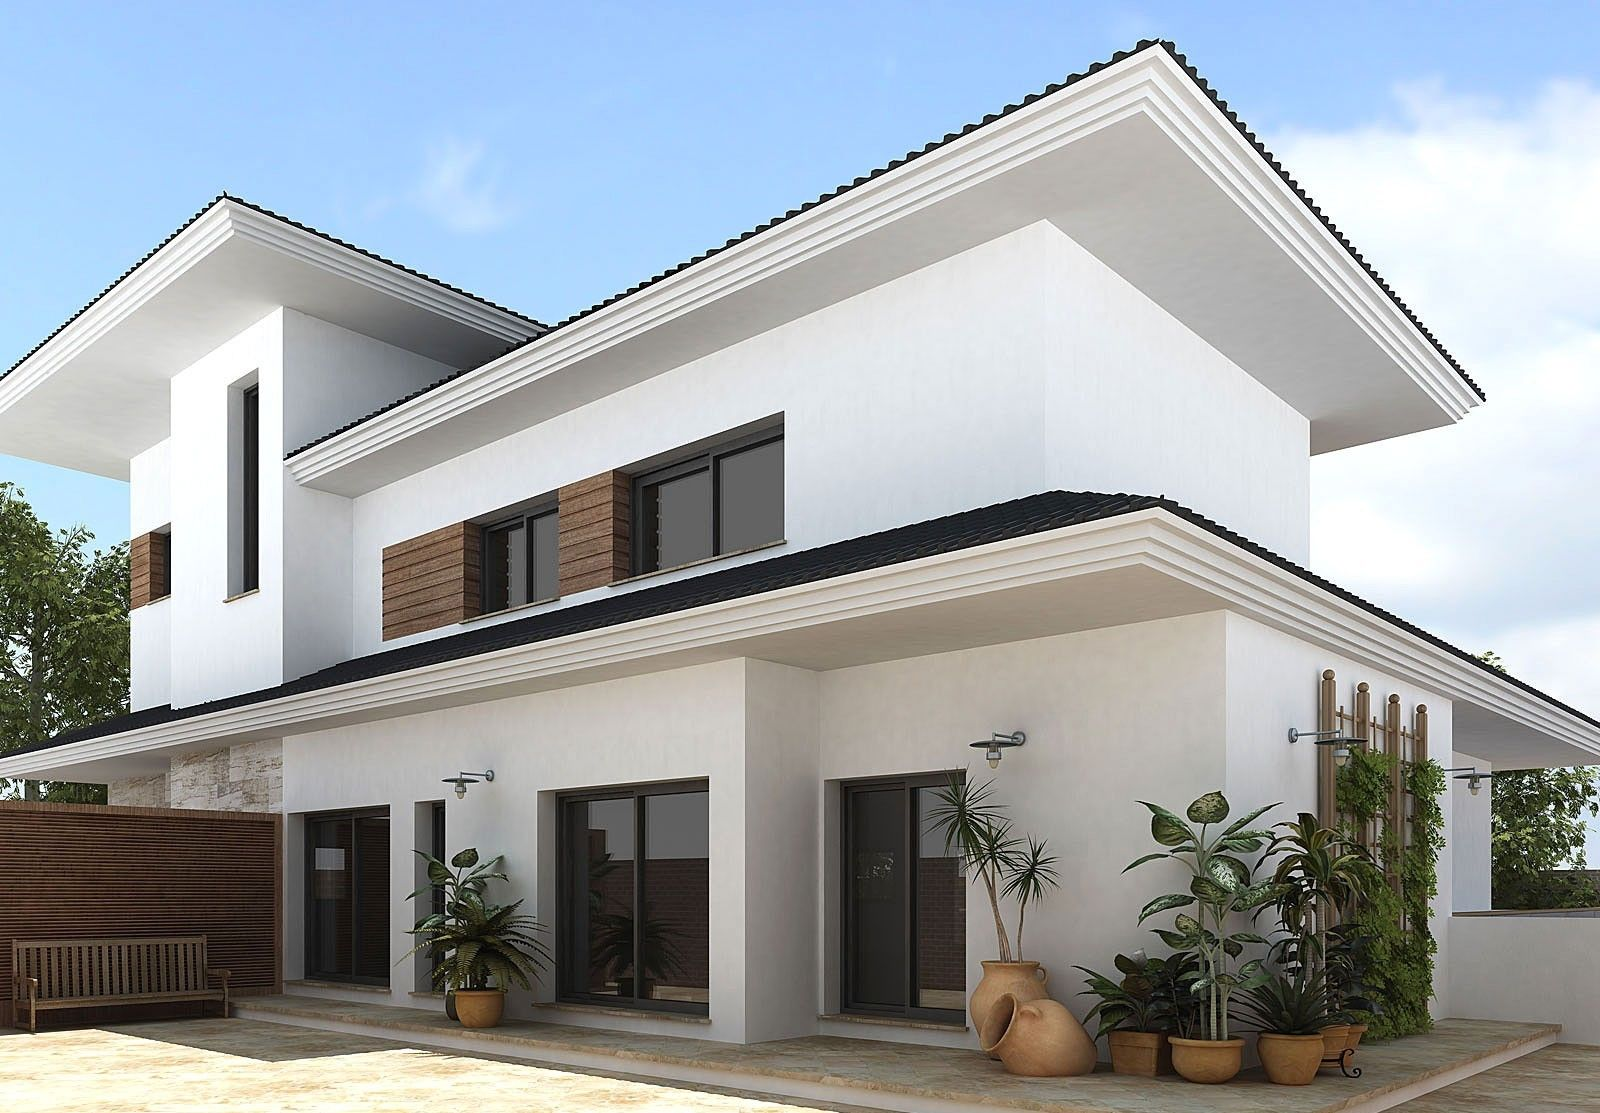 Painting Exterior Of House Minimalist Decoration Unique Minimalist White Home Exterior Design  Interior Design  Exterior . Design Decoration